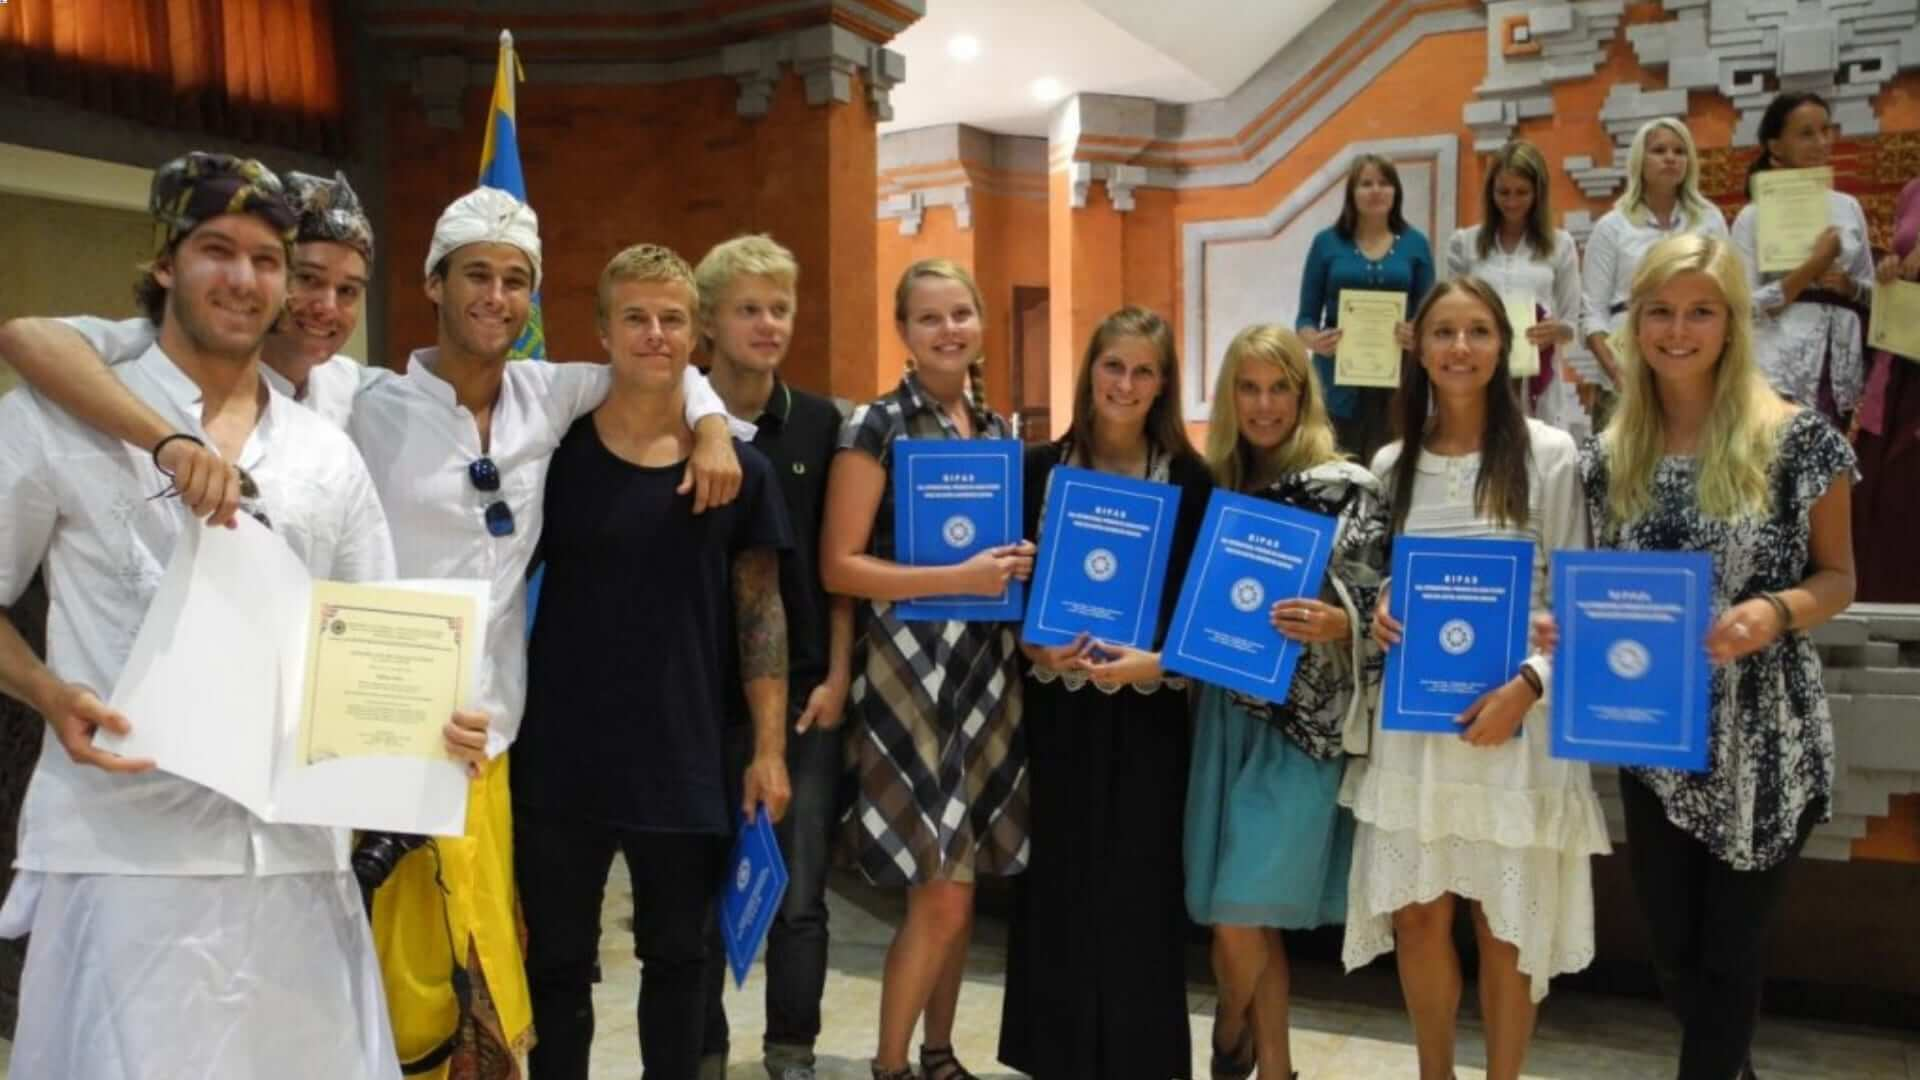 Students are holding a blue certificate at an Indonesian university in Bali.